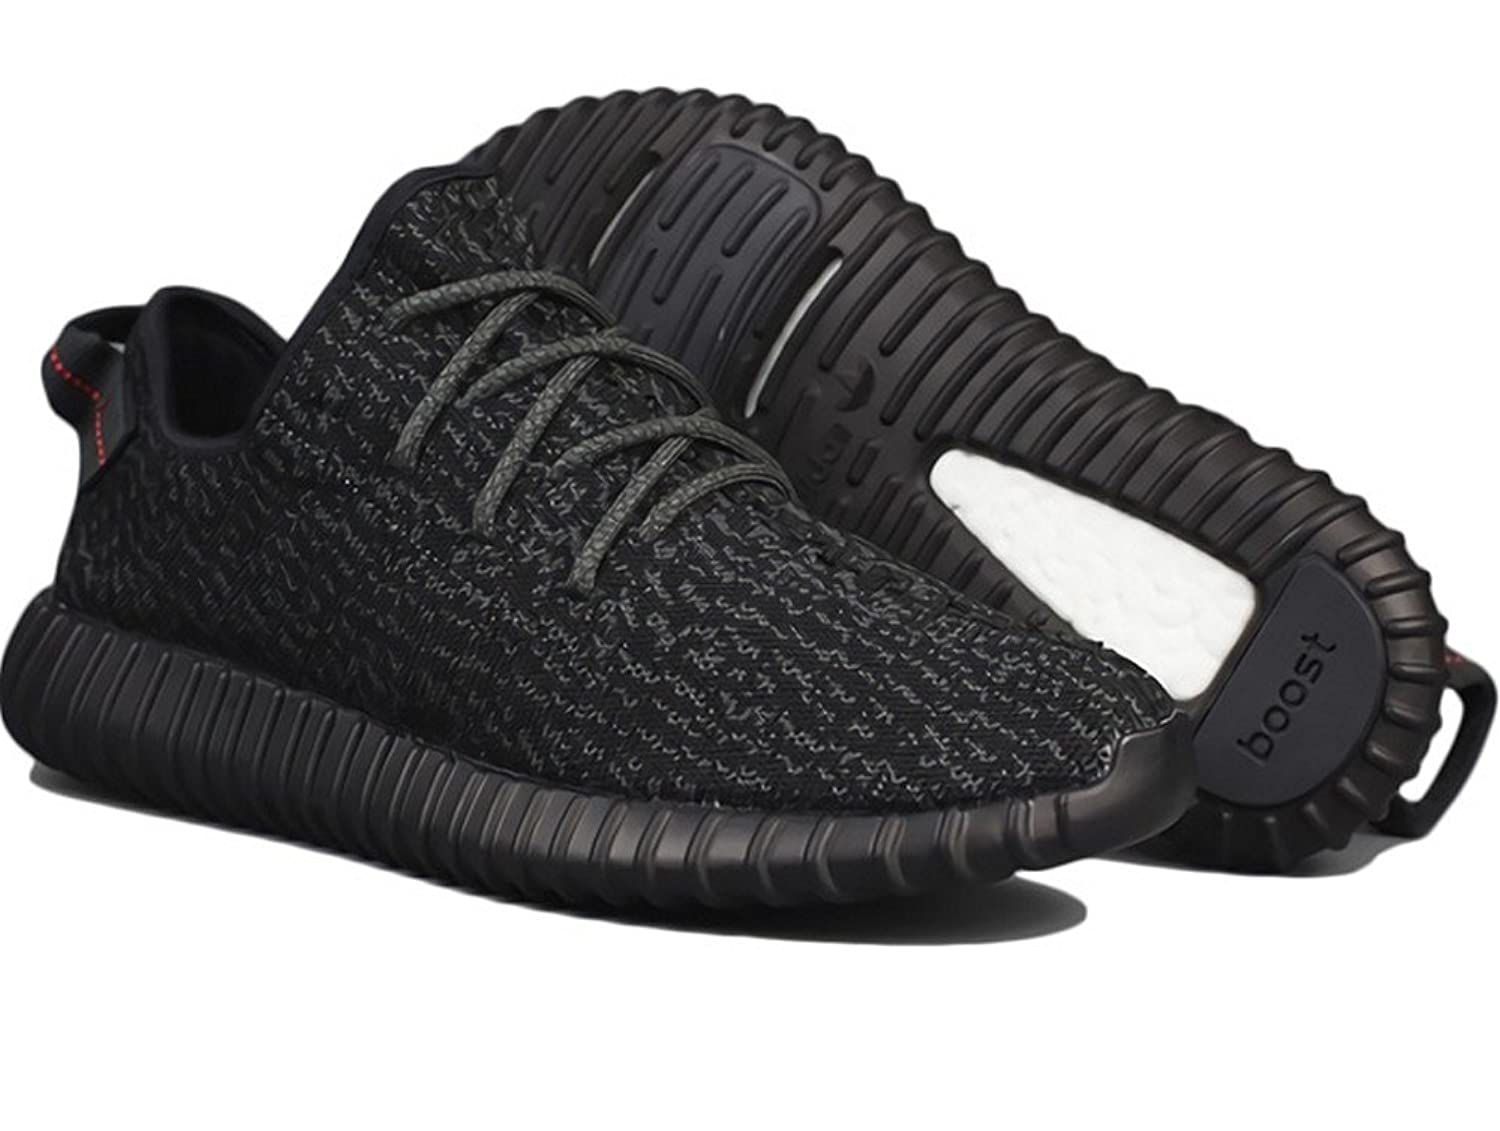 Amazon.com: Adidas yeezy boost 350,Kanye West Shoes for men